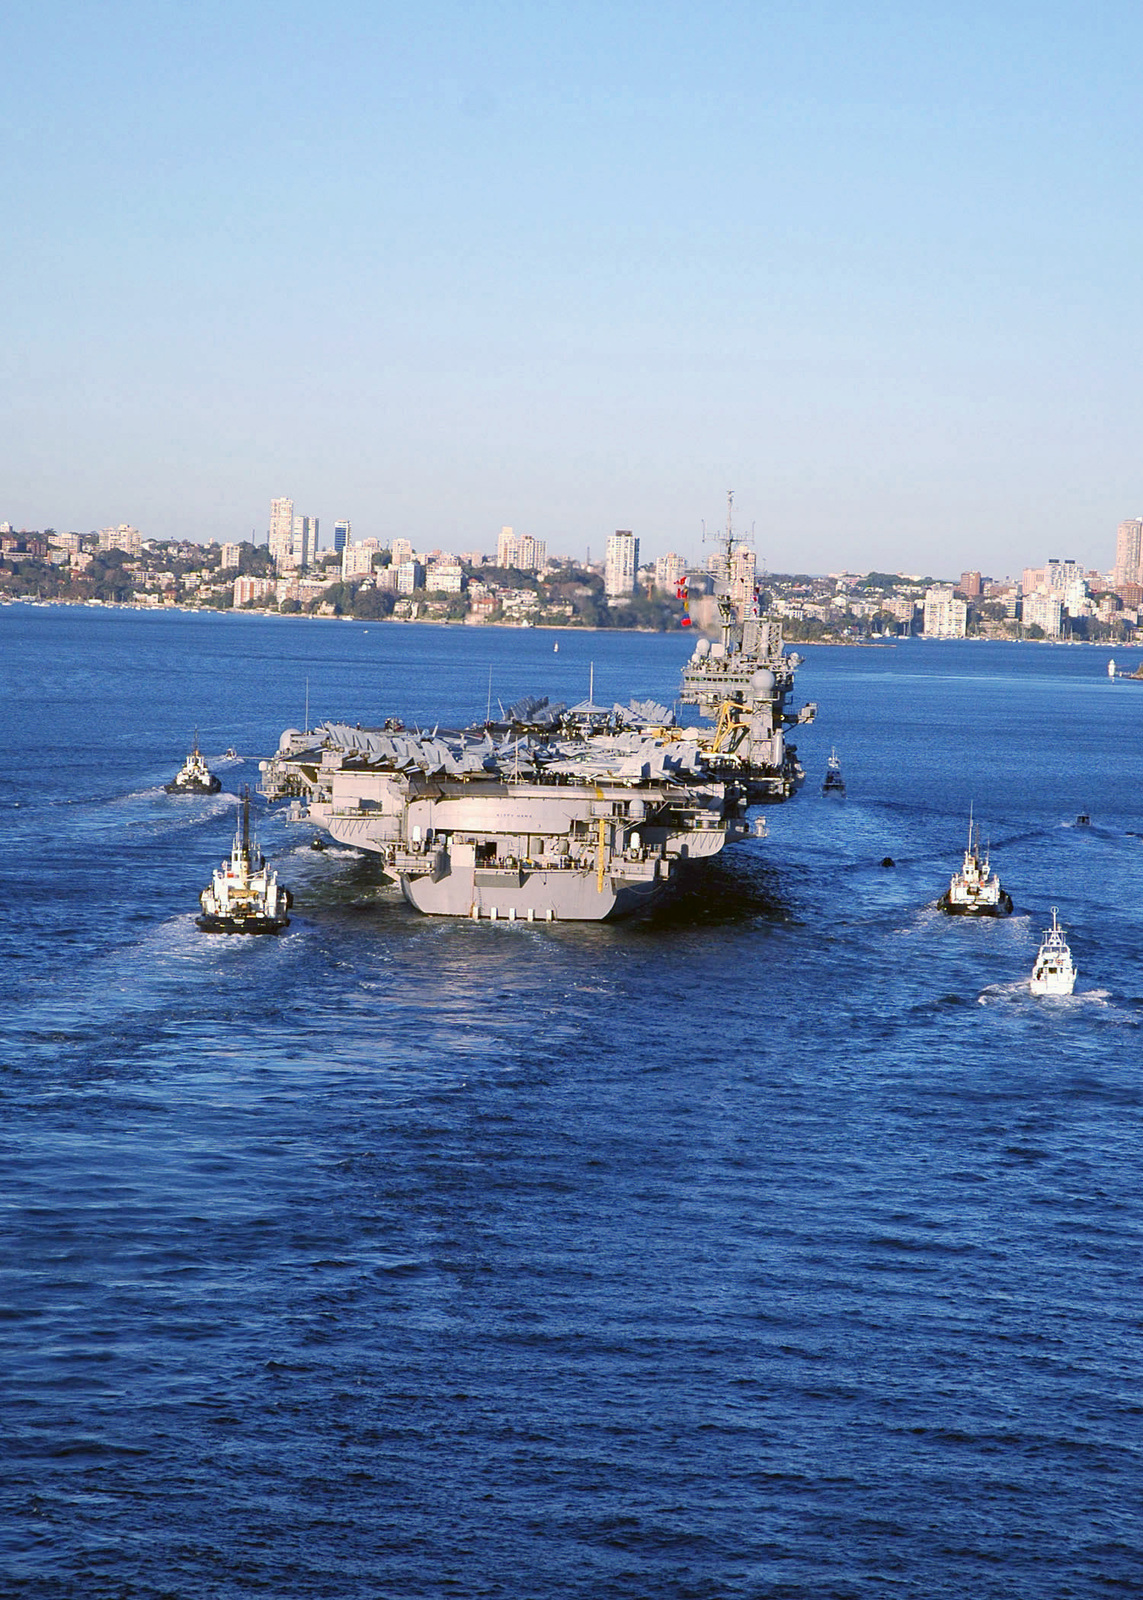 Stern on view of the US Navy (USN) Aircraft Carrier, USS KITTY HAWK (CV 63), being escorted by commercial tug boats and harbor patrol craft, as it transits the harbor at Sydney, Australia. The KITTY HAWK has just completed operations as part of Exercise TALISMAN SABRE 2005